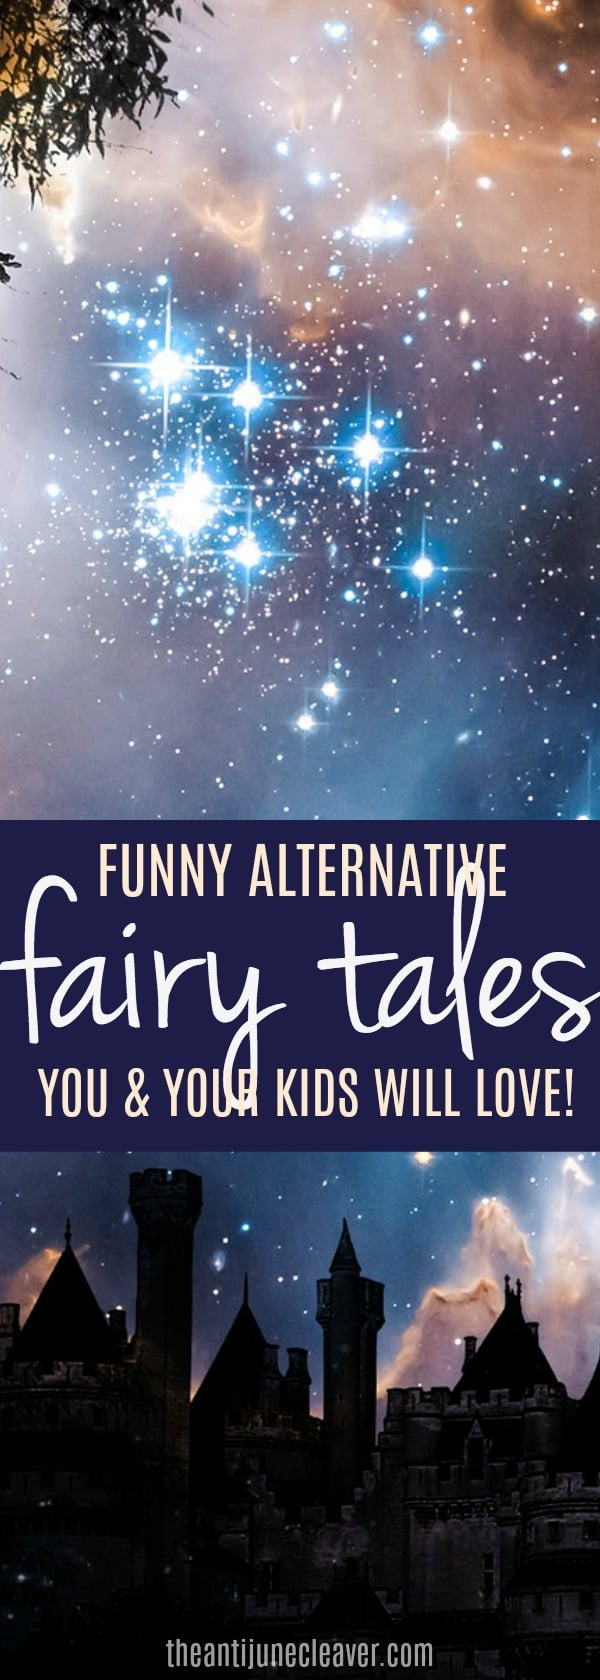 Children's Books Ages 4-8: Our 12 Favorite (Funny) Alternative Fairy Tales #childrensbooks #books #fairytales